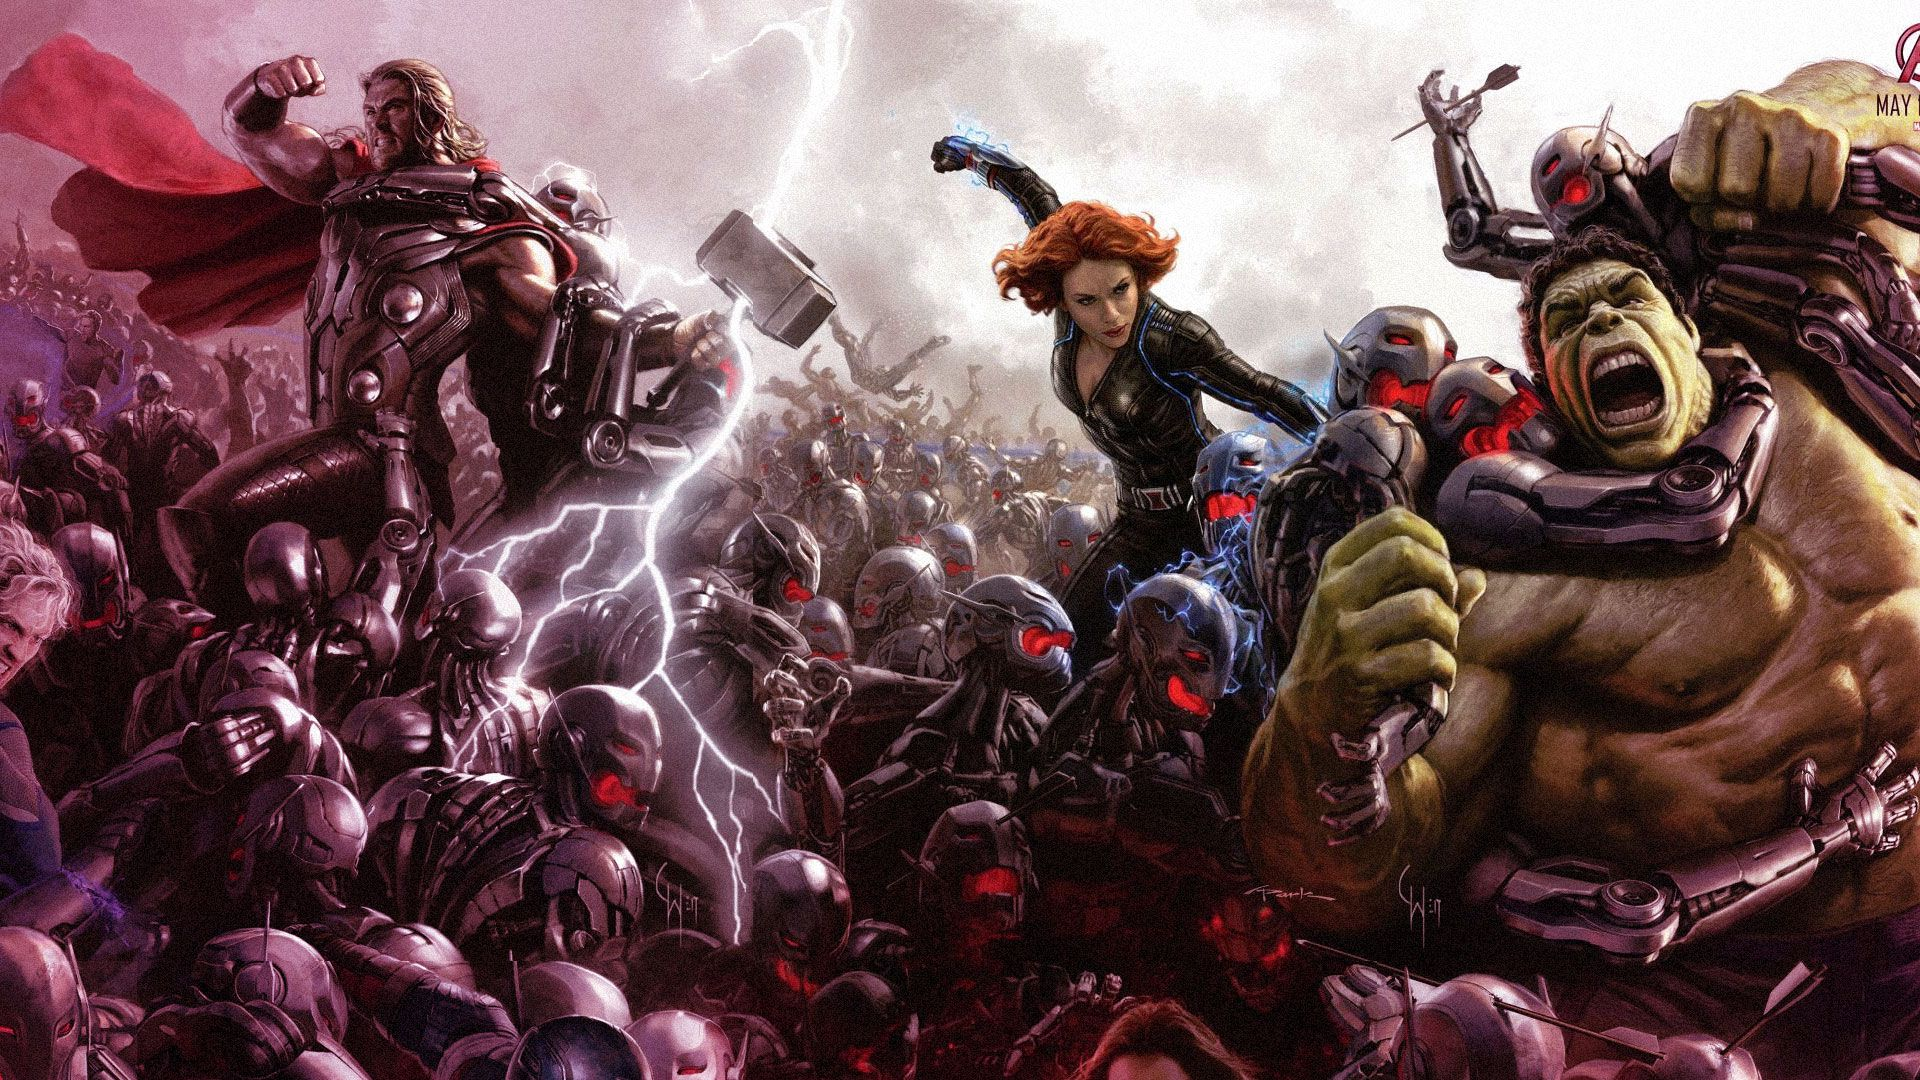 Avengers: Age of Ultron's most confusing scene and the gun